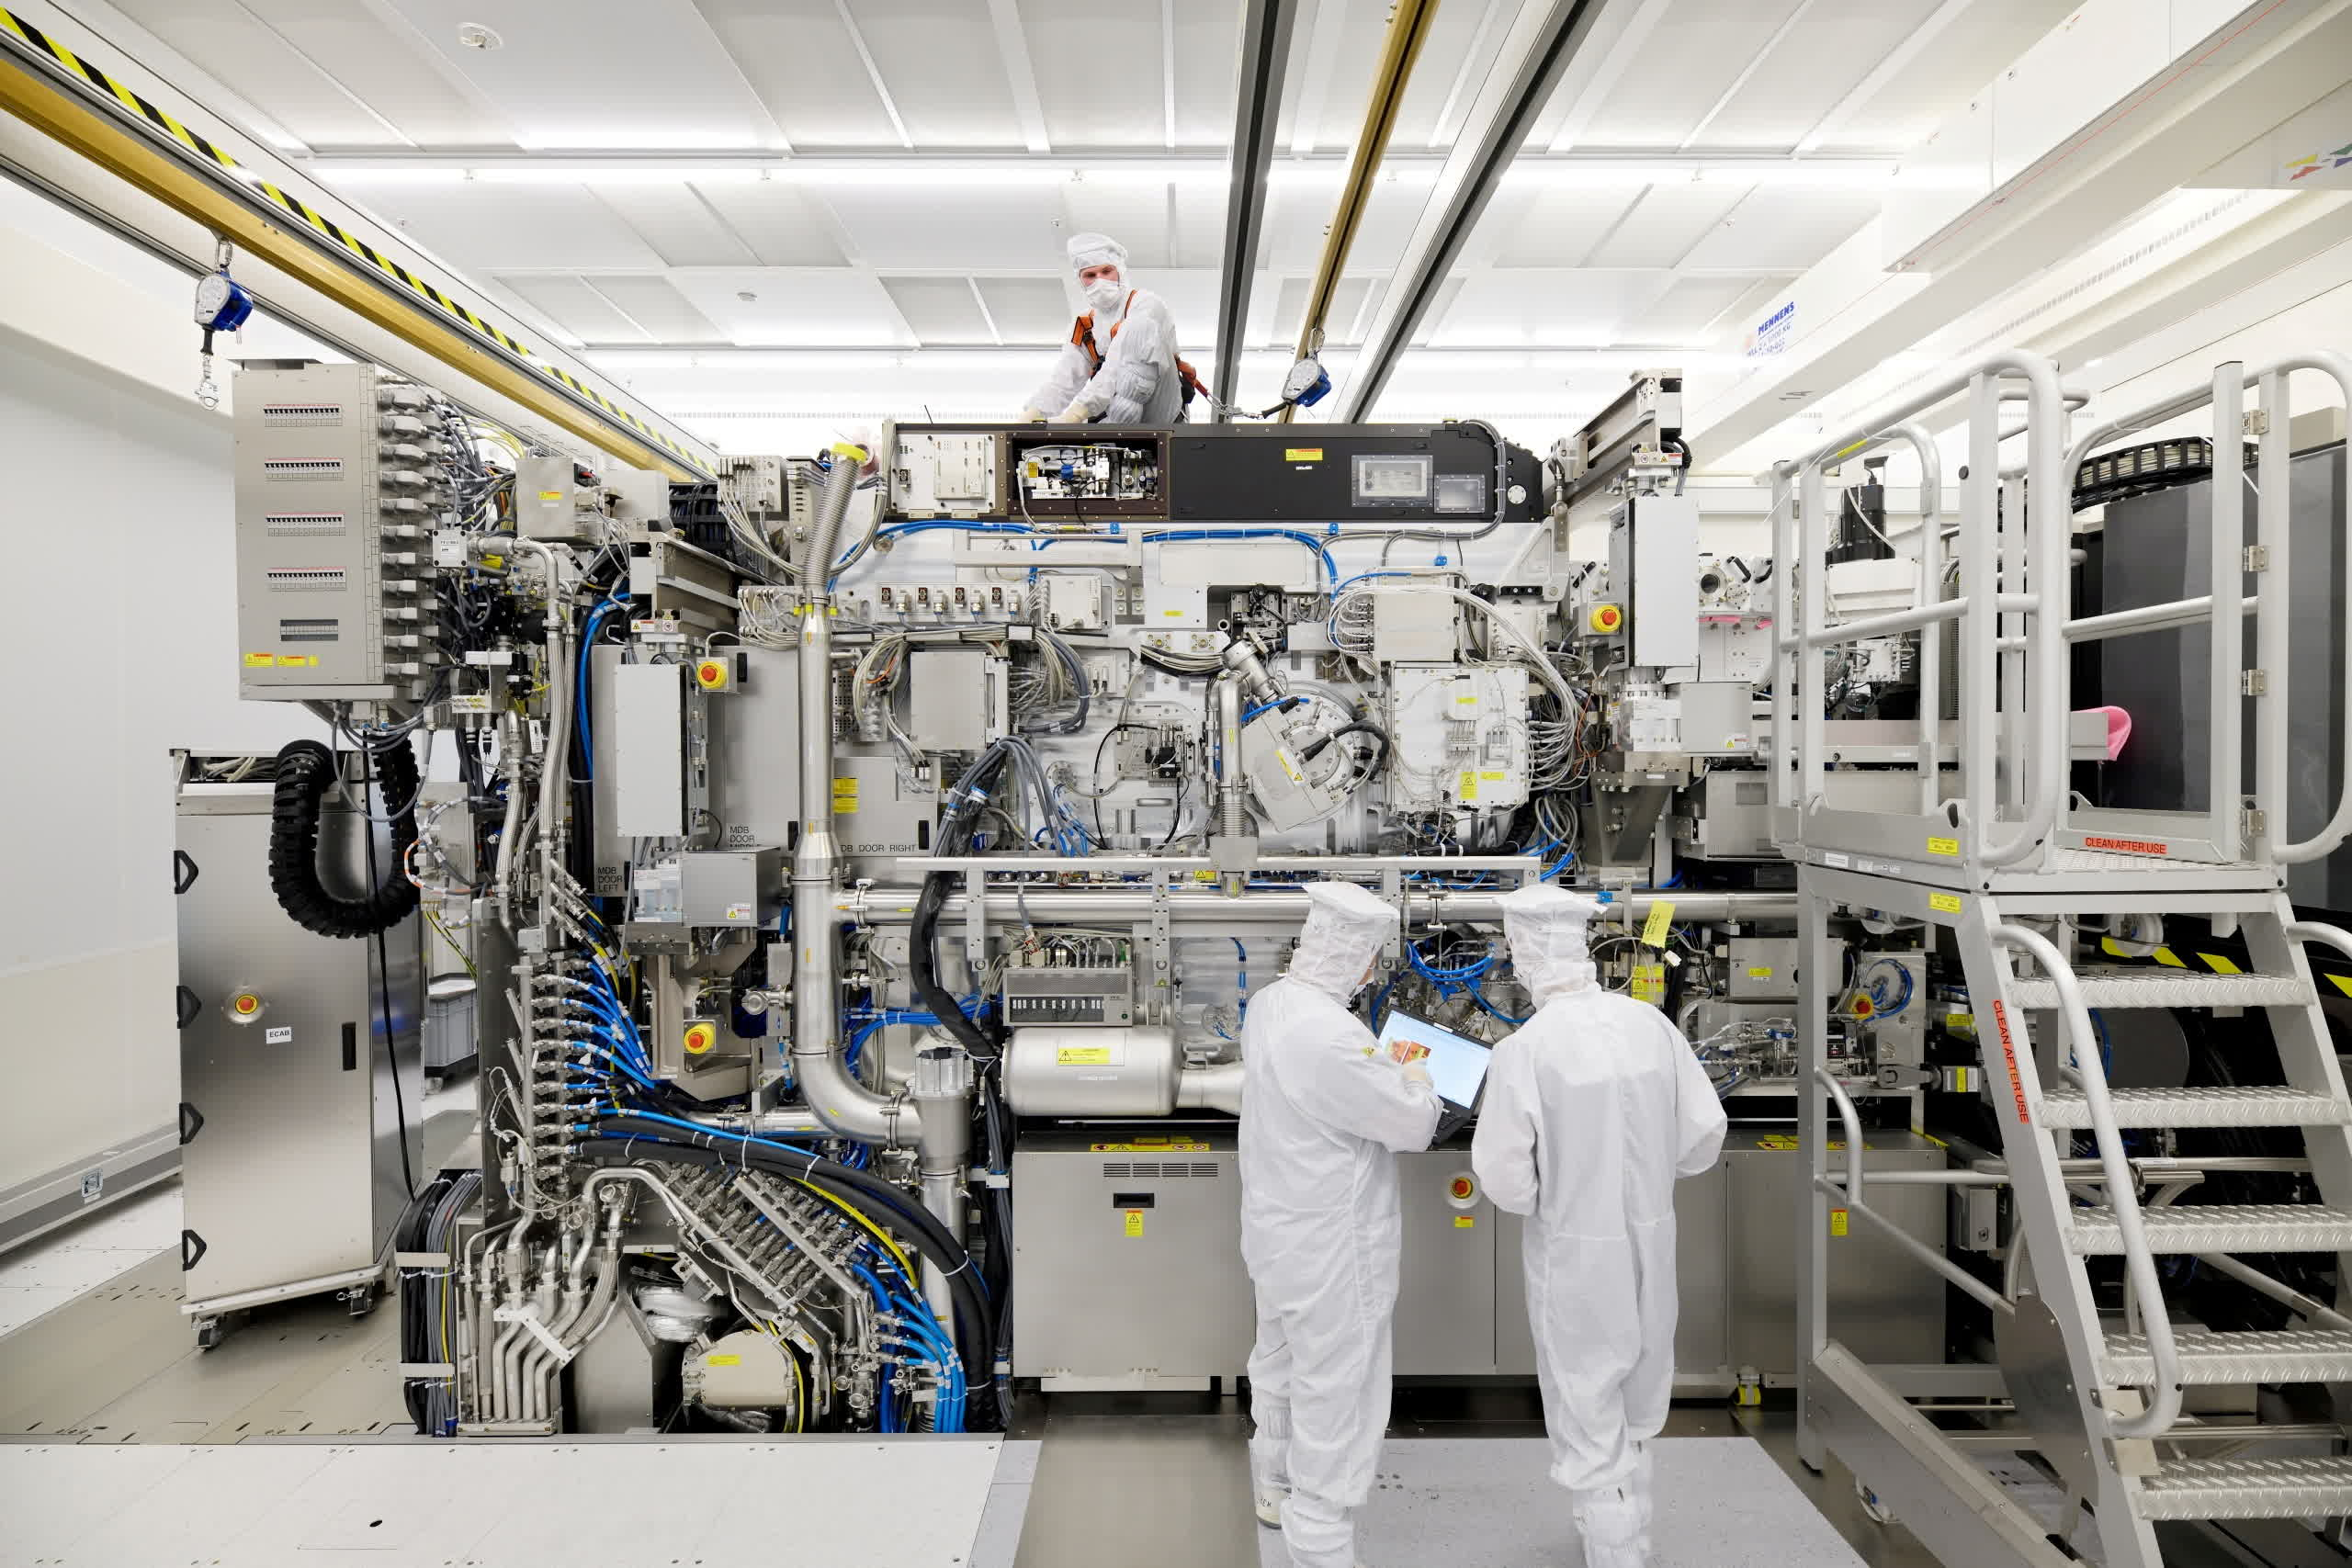 Chipmakers and electronics manufacturers can't find enough skilled workers